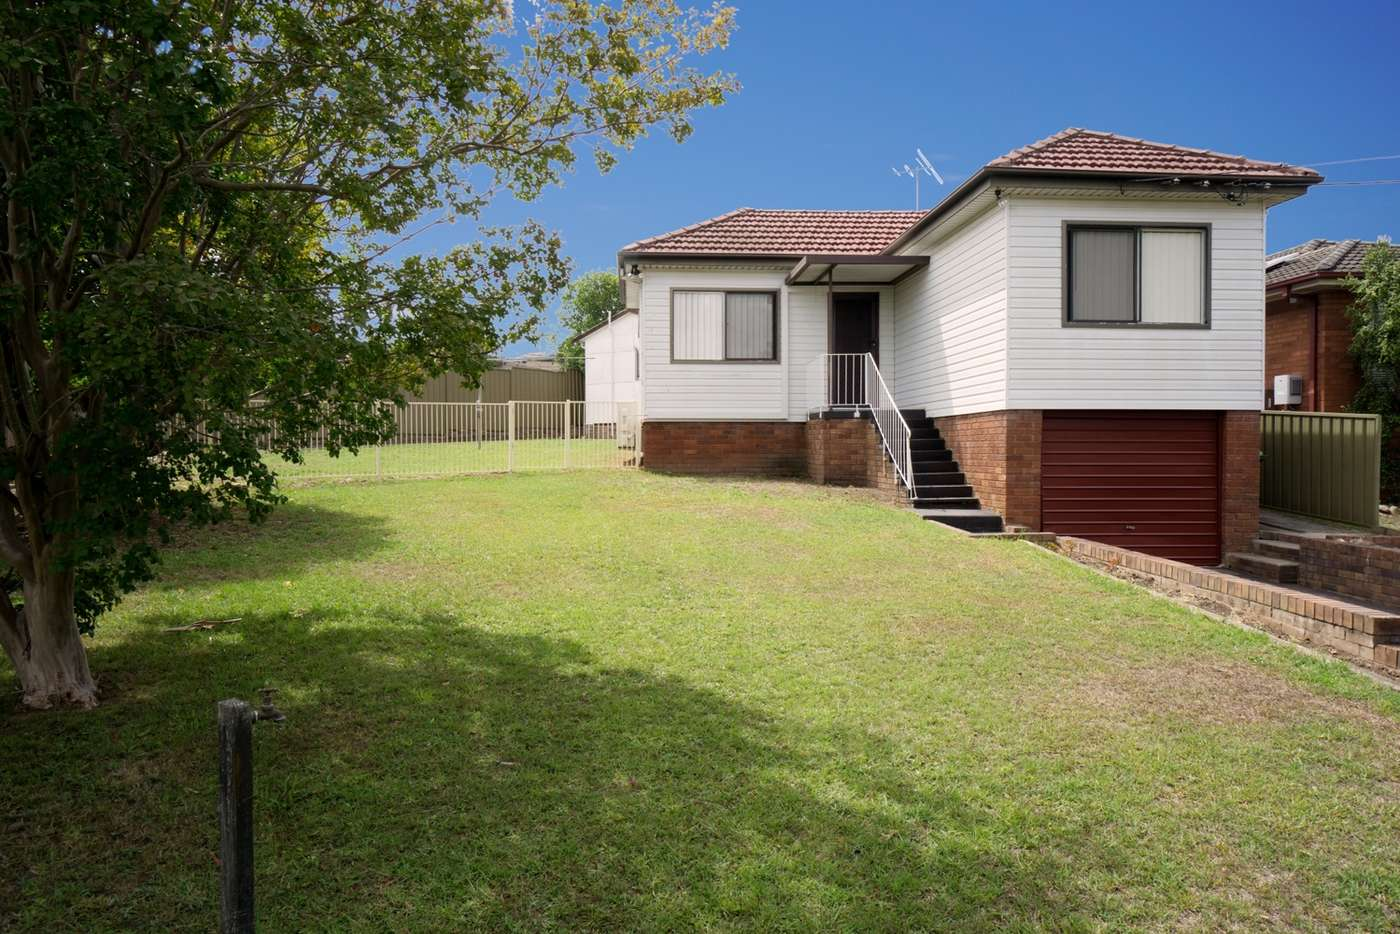 Main view of Homely house listing, 6 Tony Crescent, Padstow NSW 2211